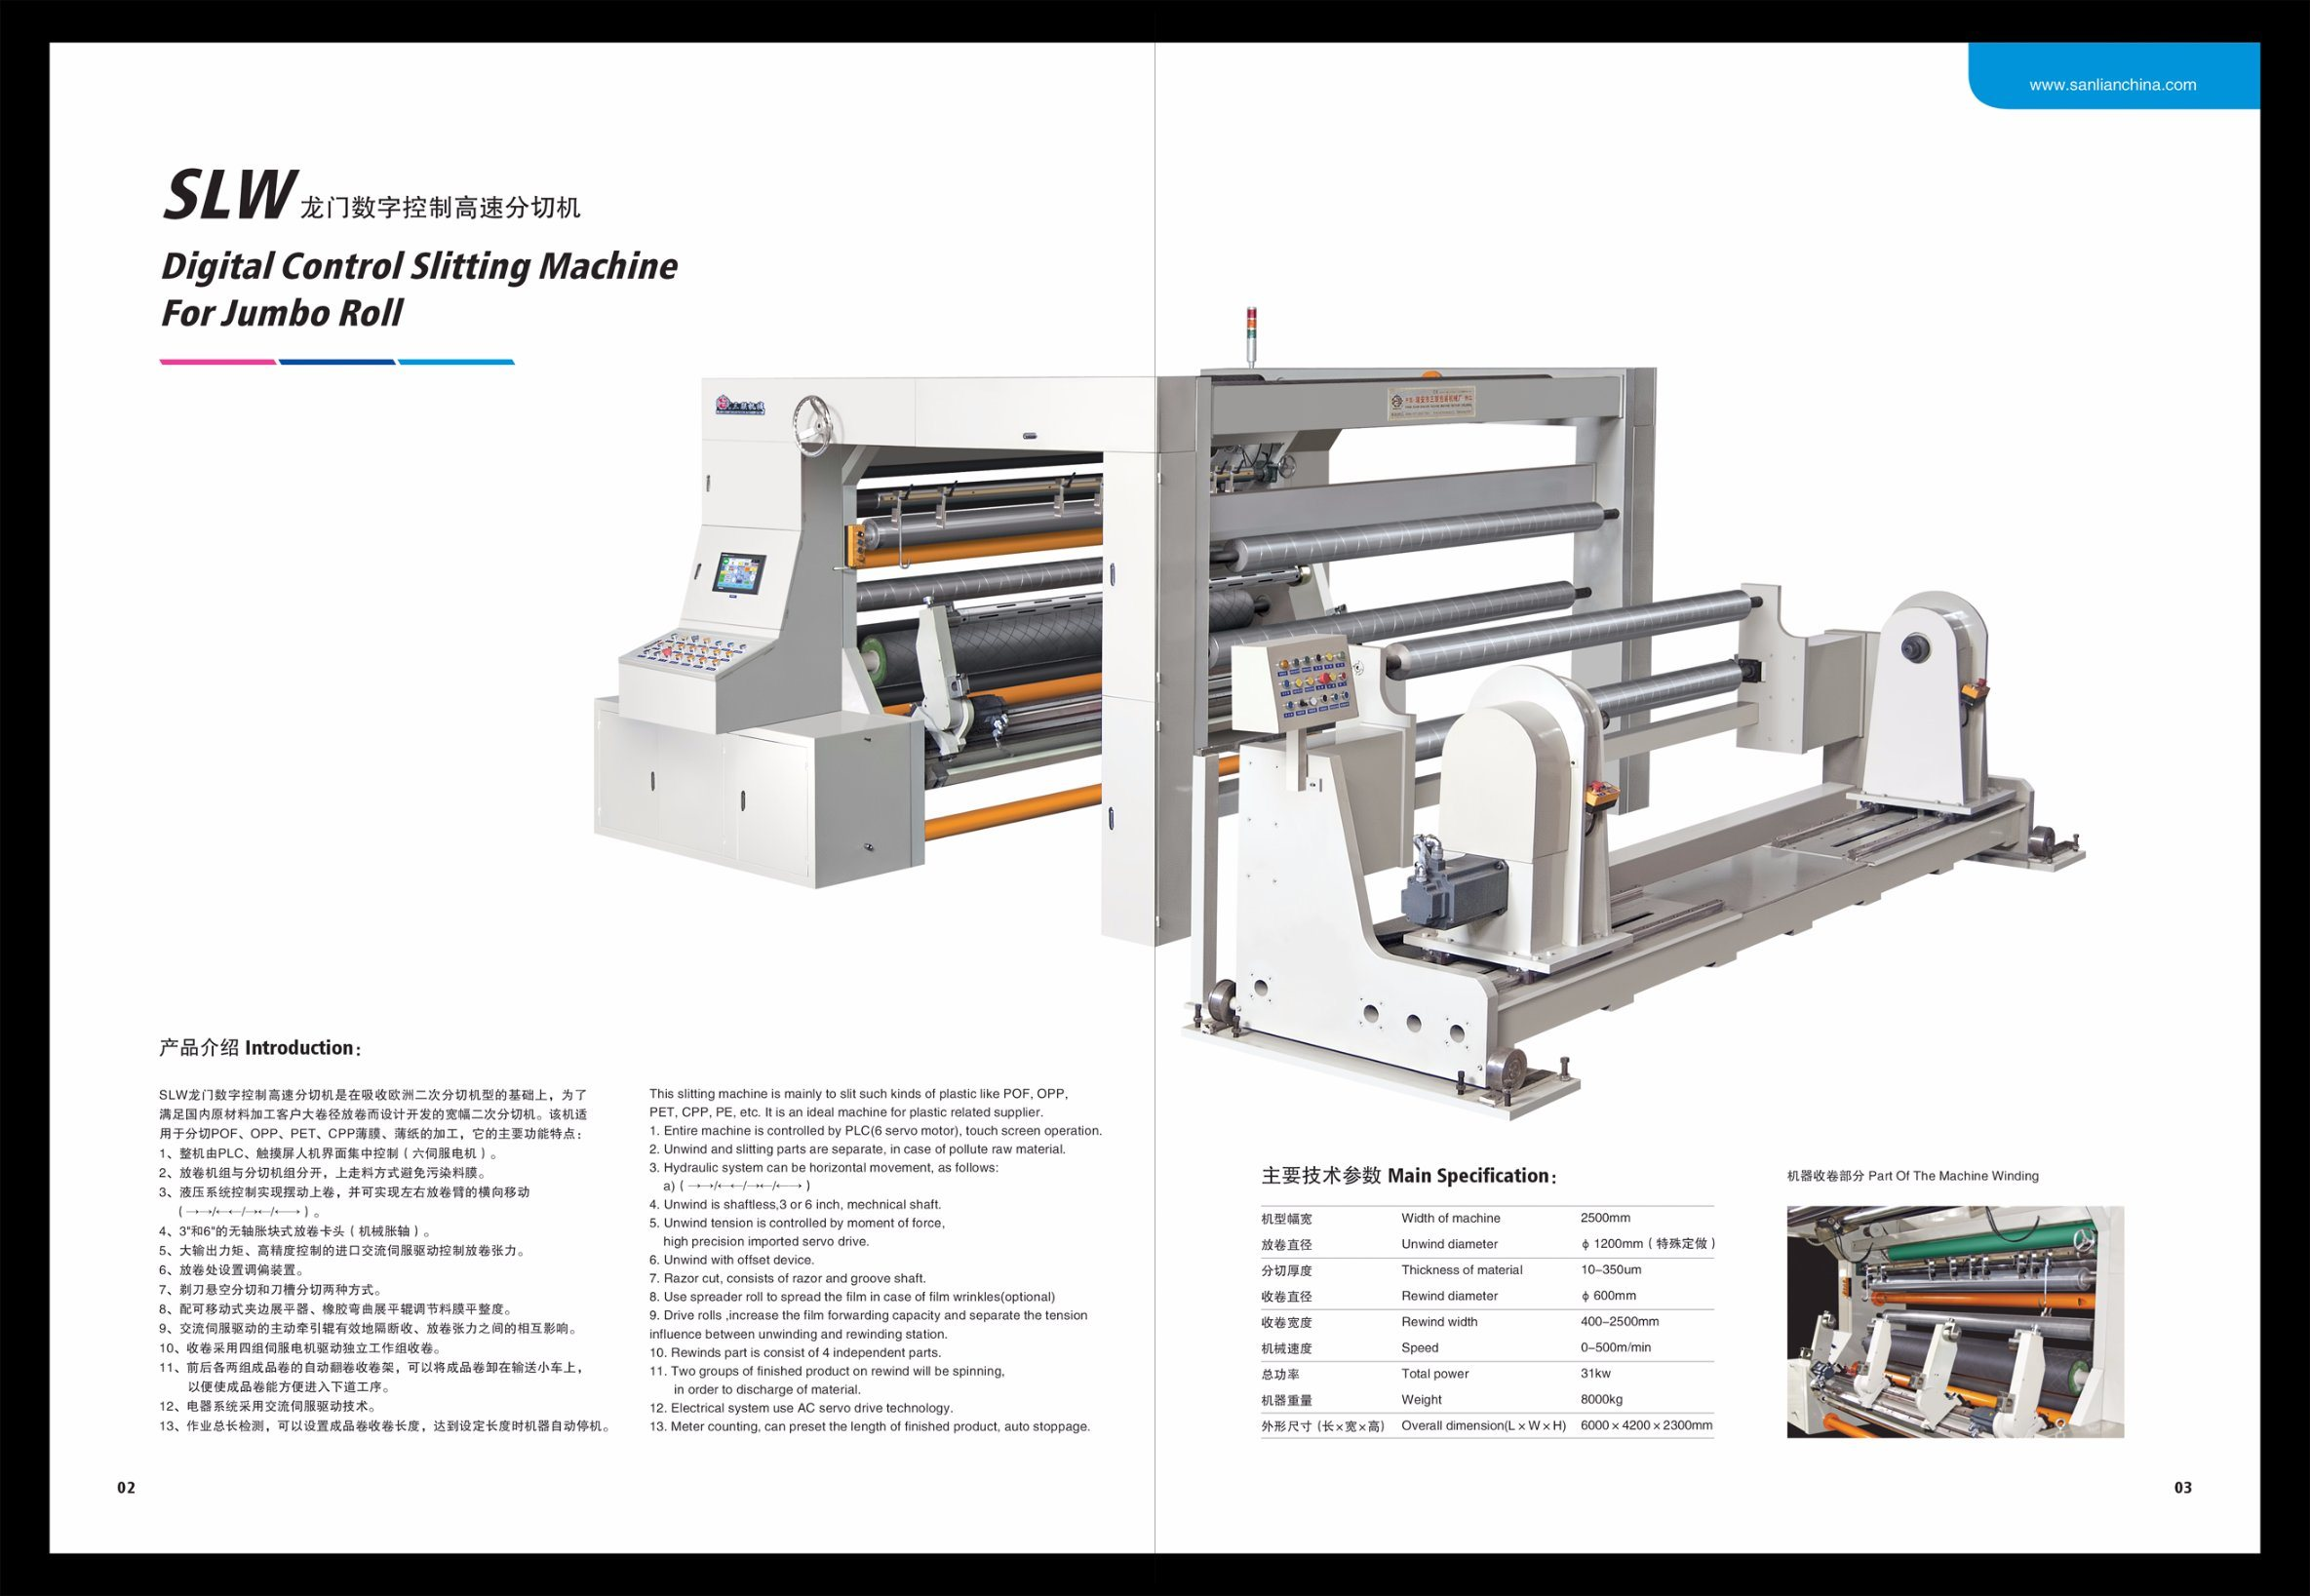 Digital Control Slitting Machine for Jumbo Roll